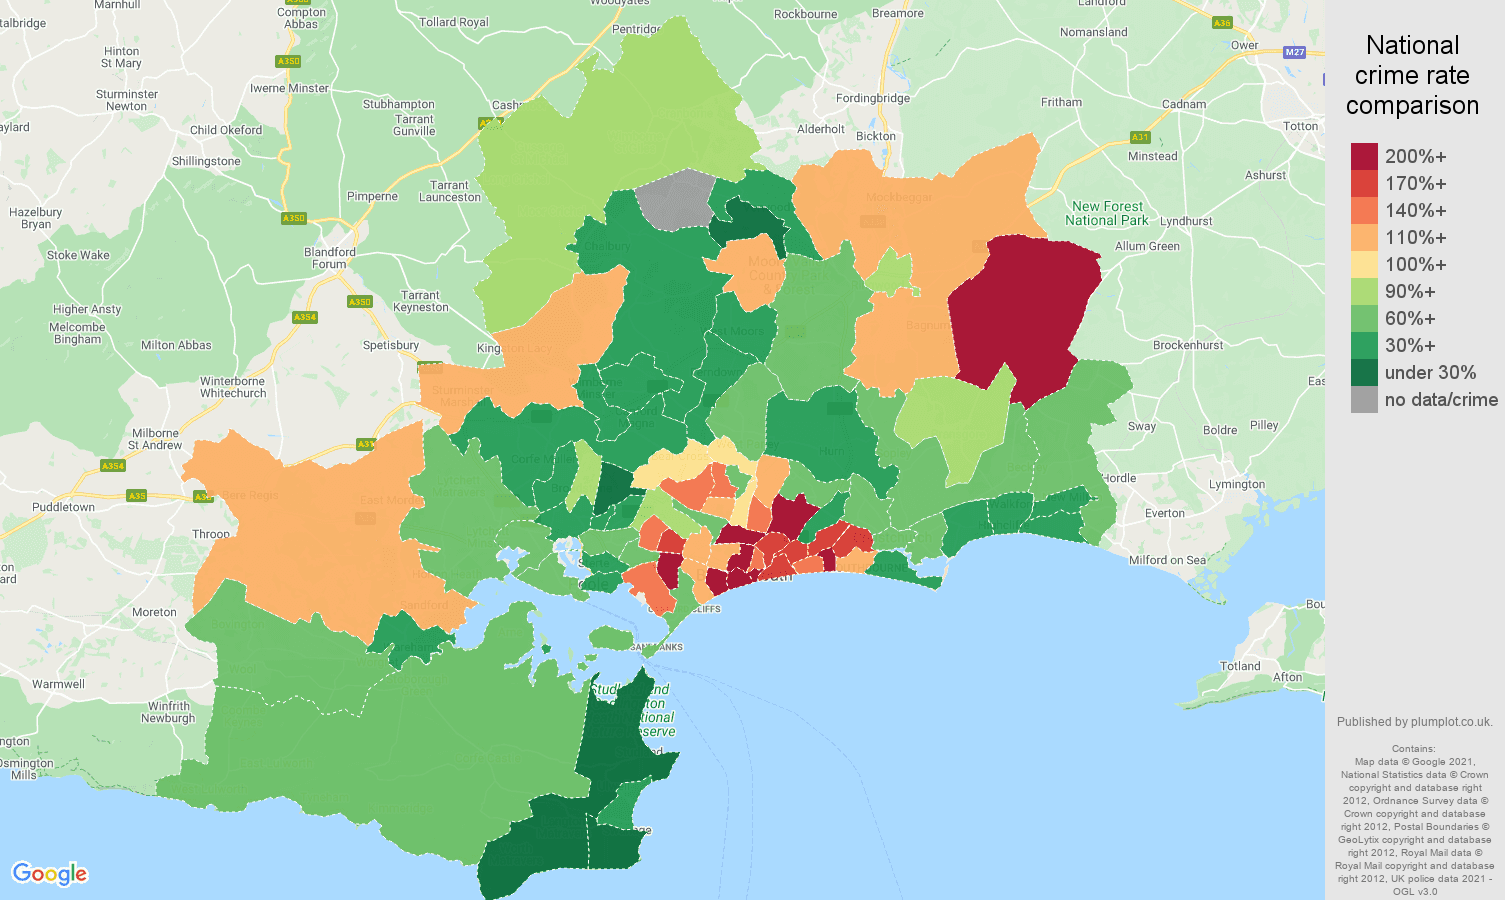 Bournemouth vehicle crime rate comparison map